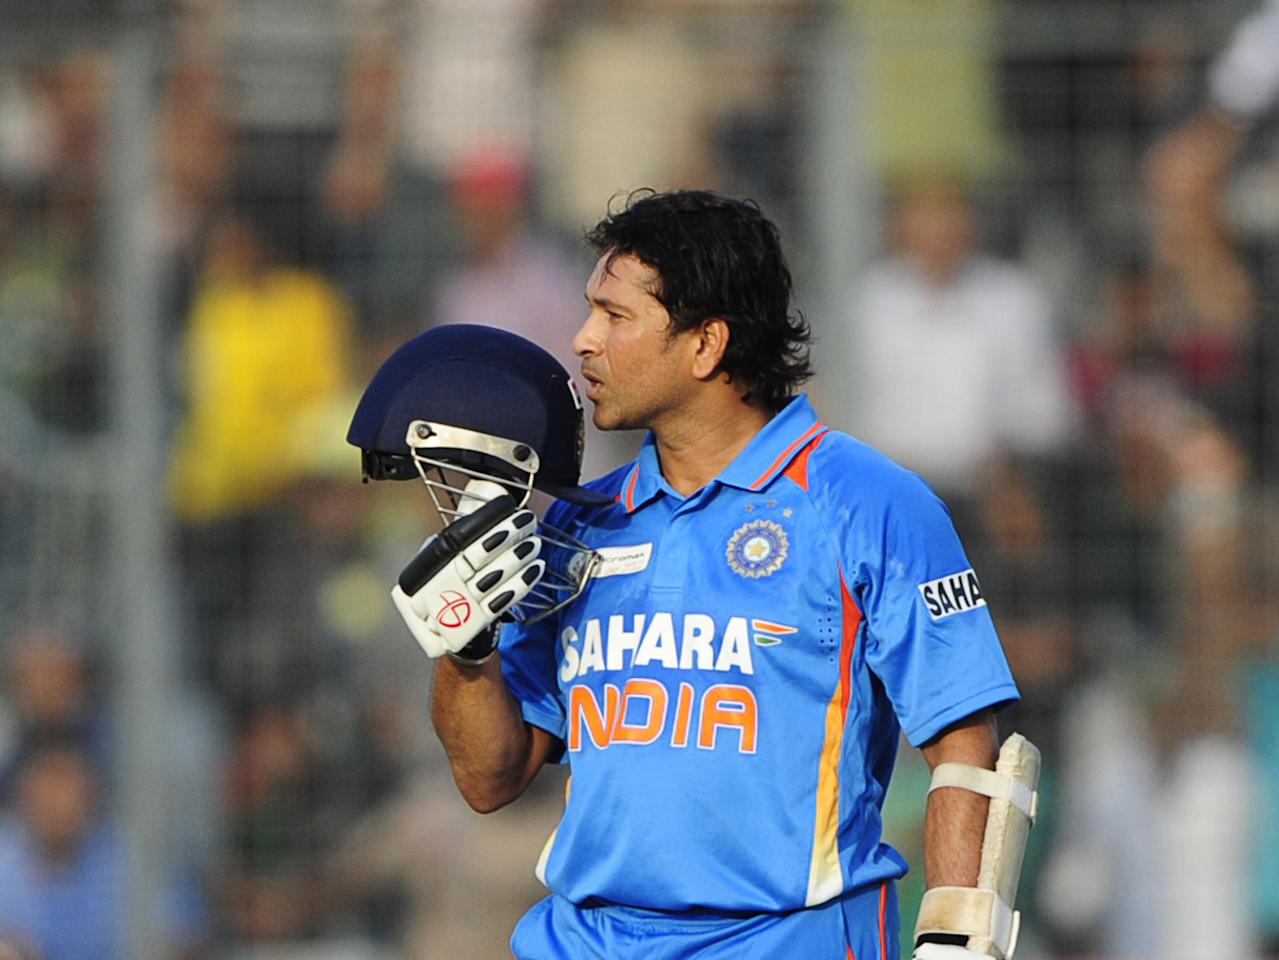 Indian batsman Sachin Tendulkar reacts after scoring his hundred century (100 runs) during the one day international (ODI) Asia Cup cricket match between India and Bangladesh at the Sher-e-Bangla National Cricket Stadium in Dhaka on March 16, 2012.  India's Sachin Tendulkar became the first batsman in history to score 100 international centuries, adding another milestone in his record-breaking career. AFP PHOTO/Munir uz ZAMAN (Photo credit should read MUNIR UZ ZAMAN/AFP/Getty Images)